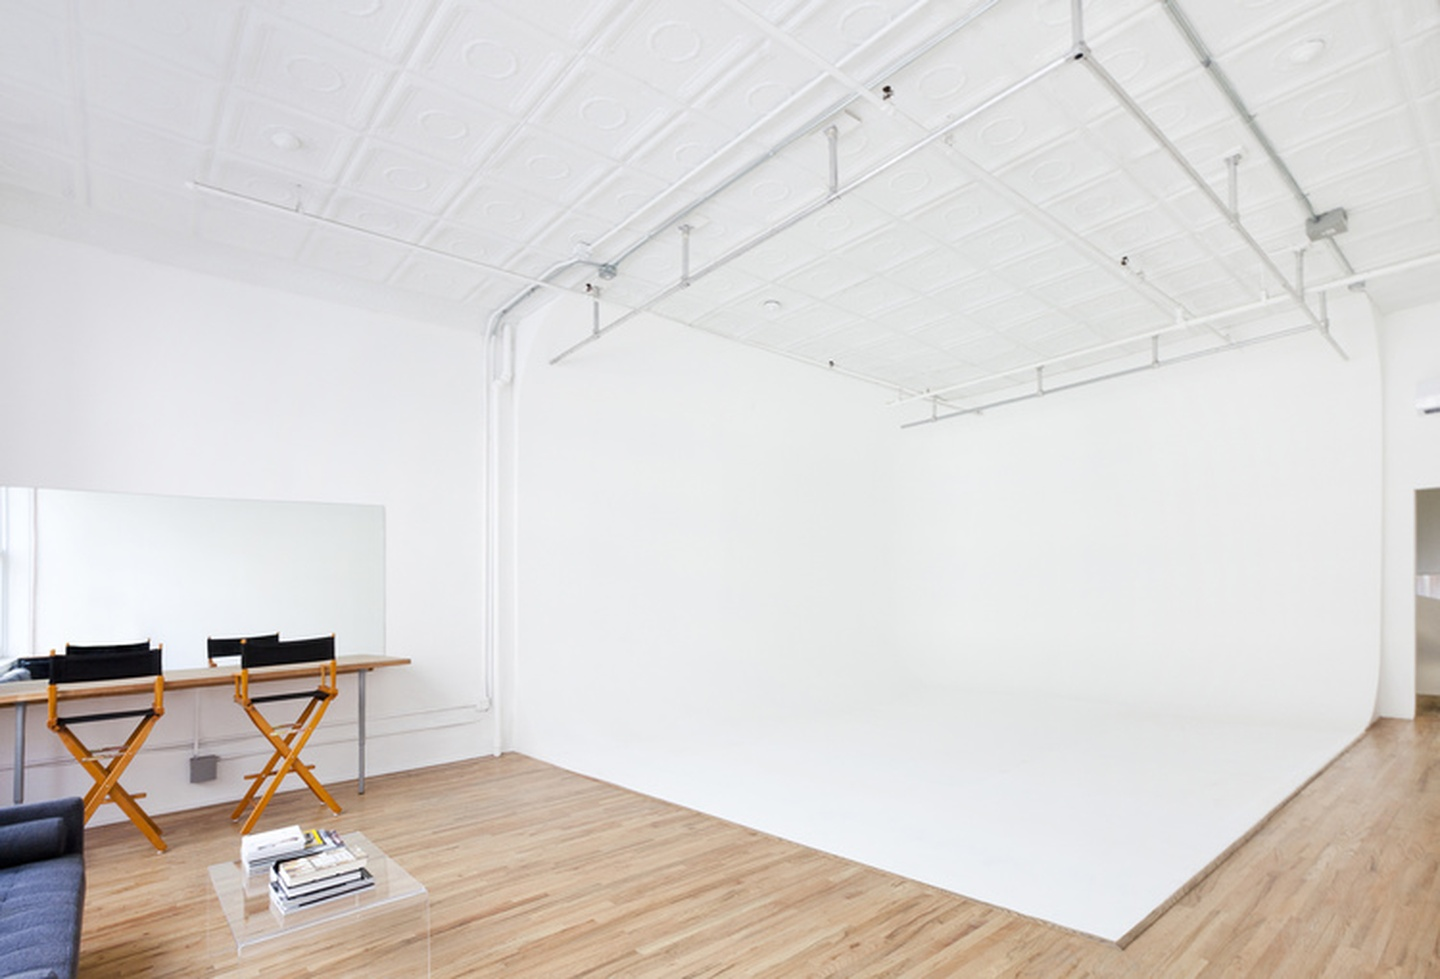 NYC workshop spaces Photography studio Space 253 image 1